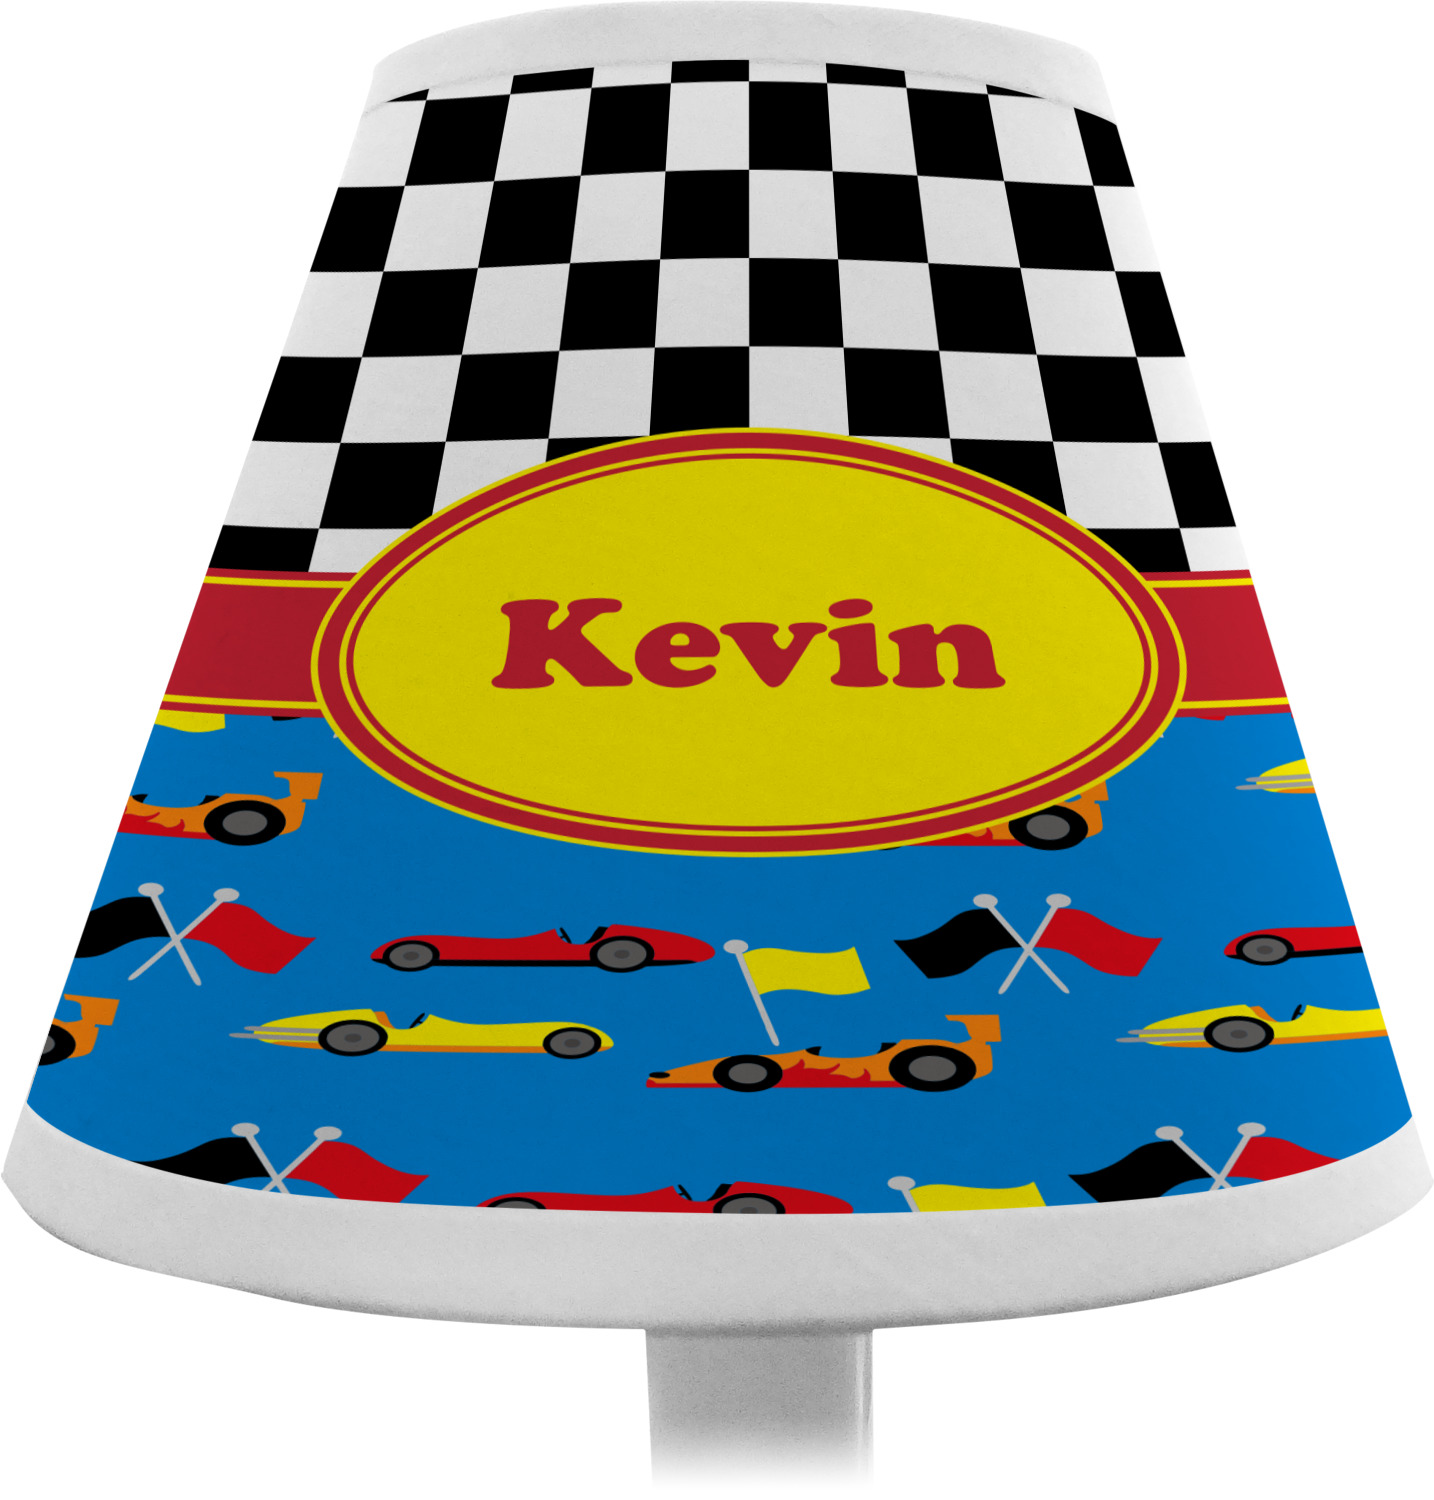 Racing car chandelier lamp shade personalized youcustomizeit racing car chandelier lamp shade personalized aloadofball Choice Image